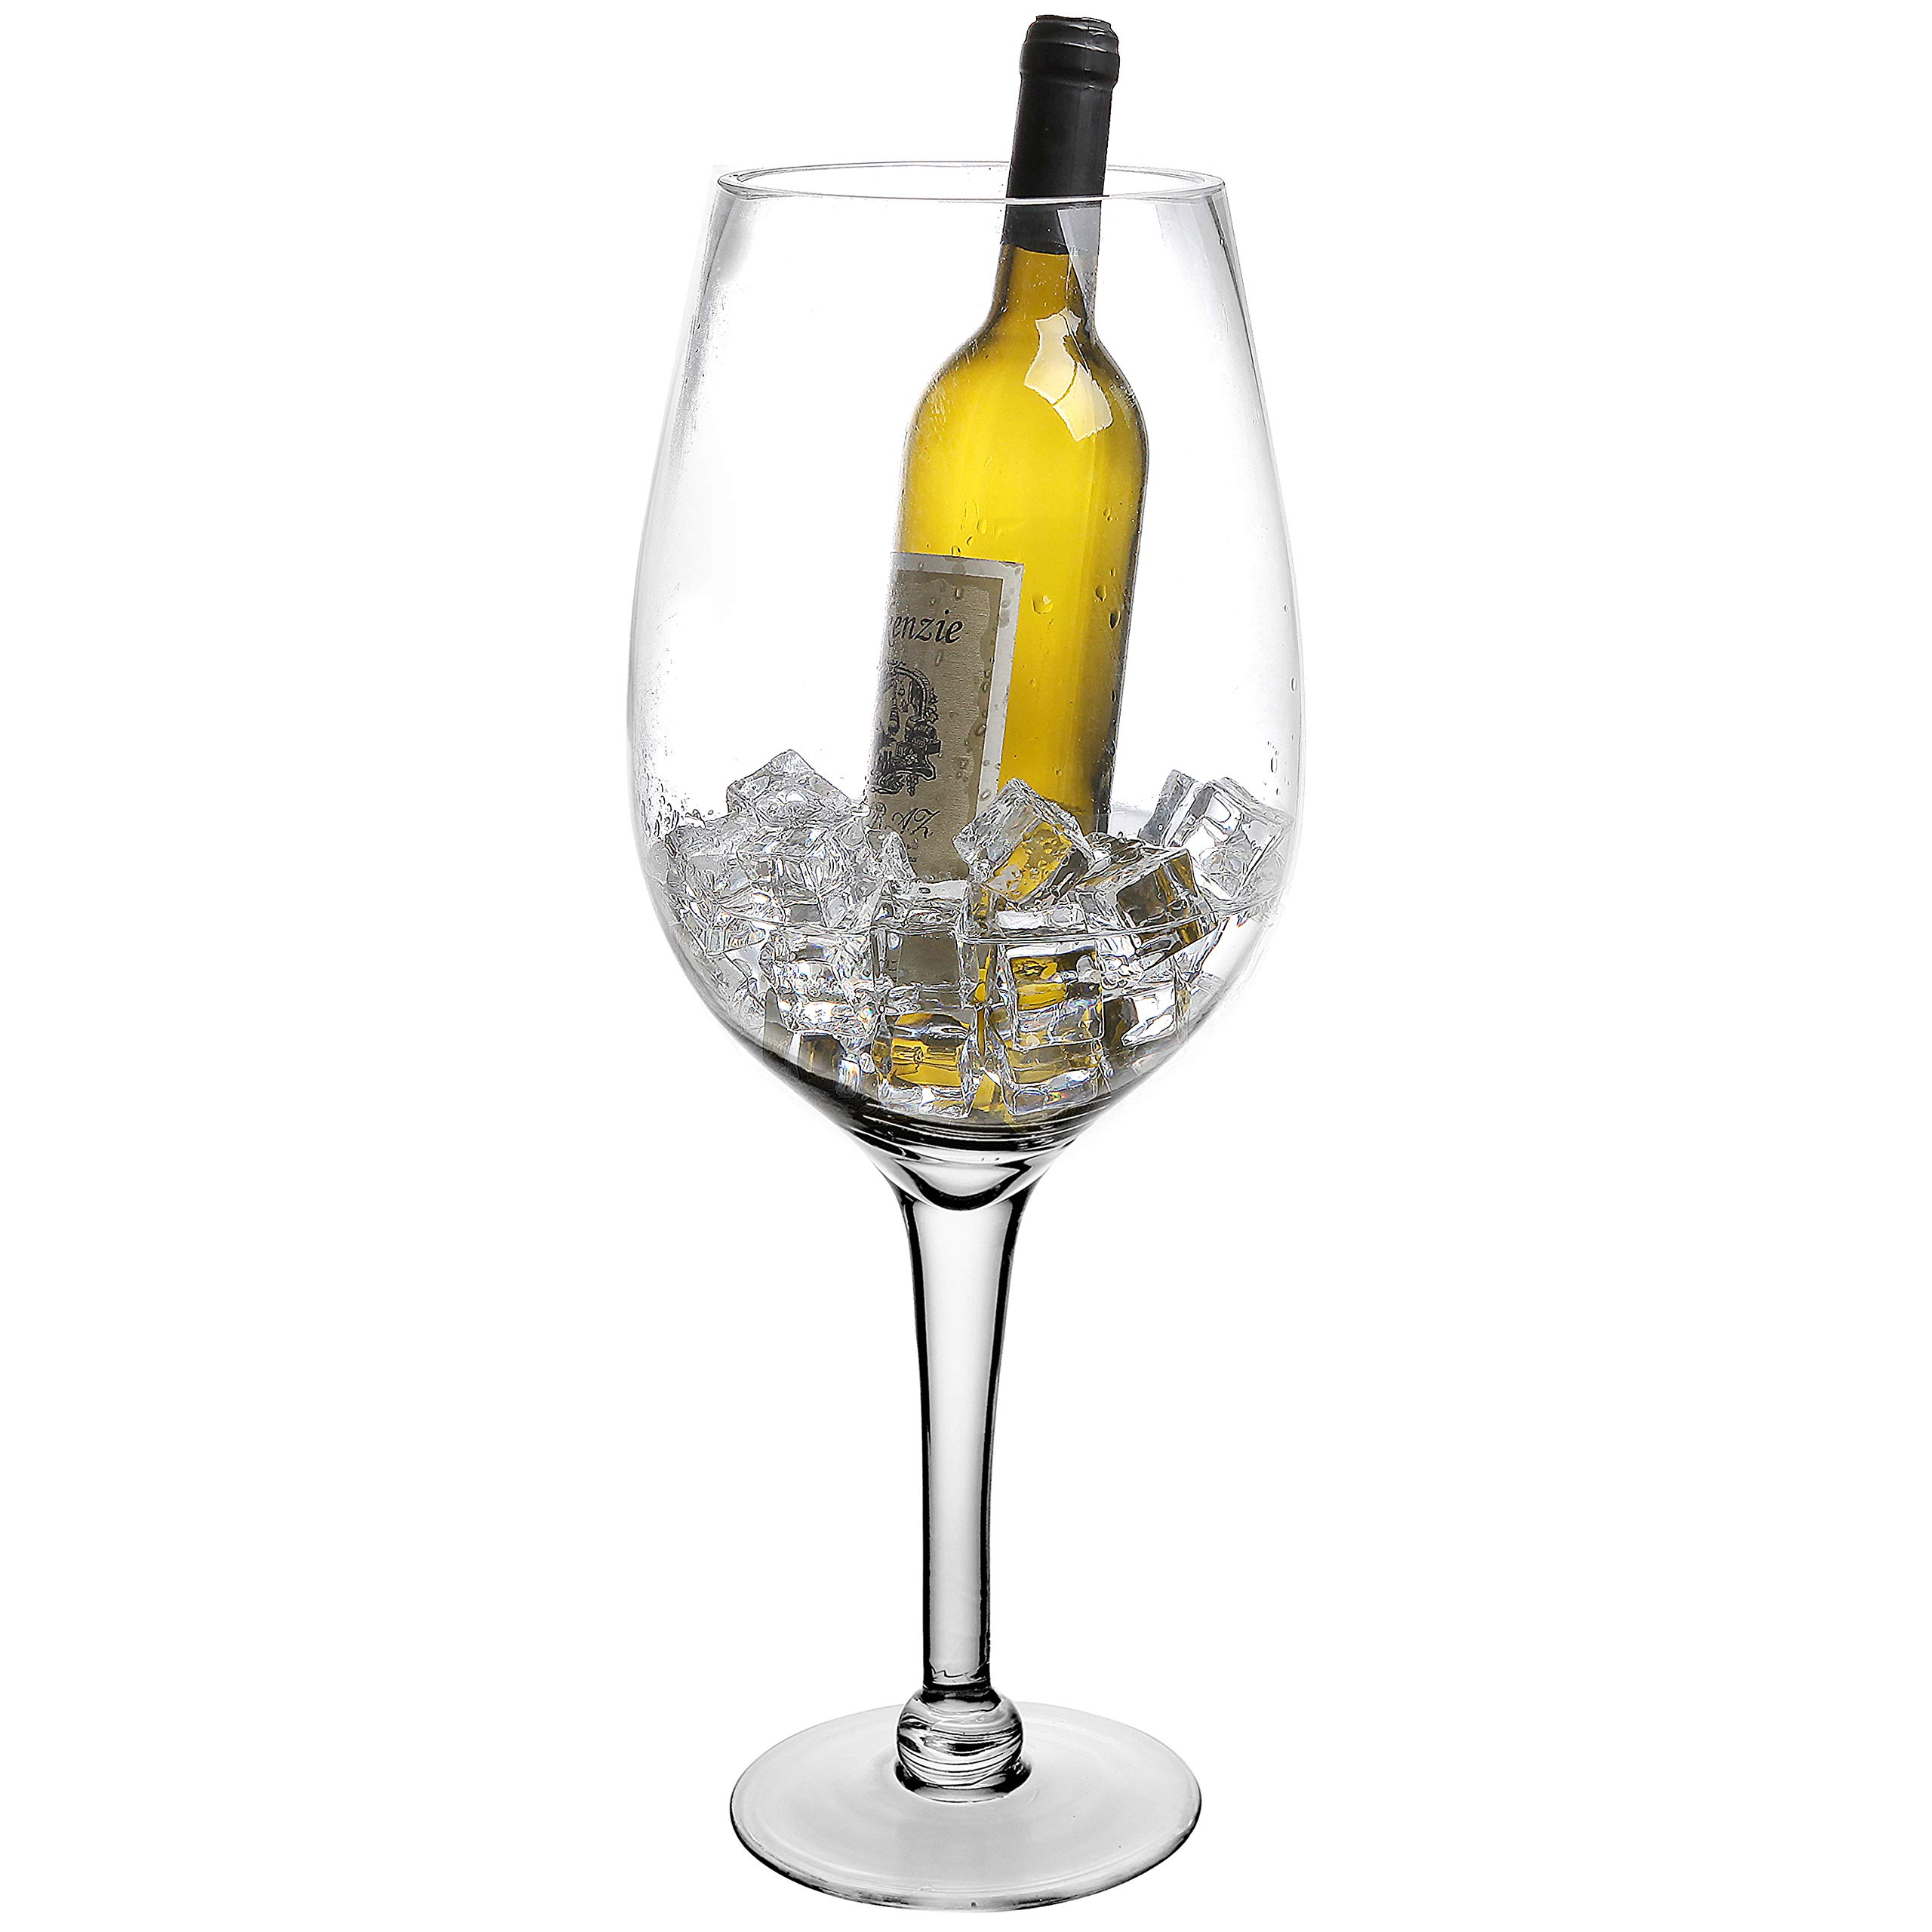 20 Inch Giant Clear Decorative Hand Blown Wine Glass Novelty Stemware/Champagne Magnum Chiller by MyGift